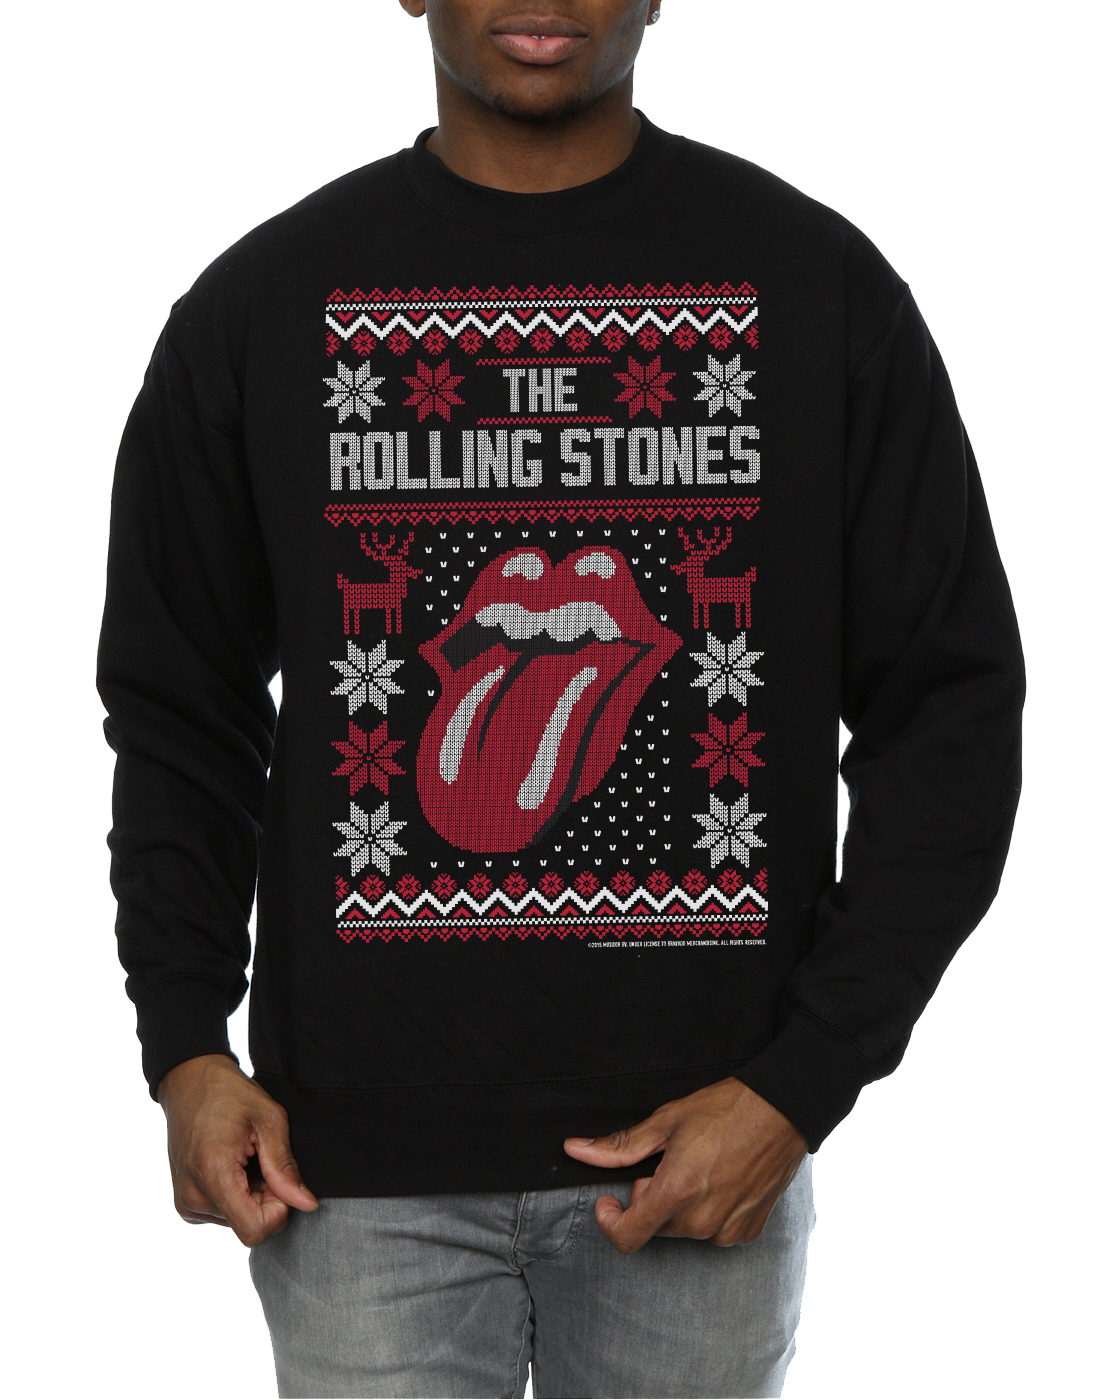 MADEWORN ROCK Rolling Stones Sweatshirt at nazhatie-skachat.gq - FASTEST FREE SHIPPING WORLDWIDE. Buy MADEWORN ROCK Online.